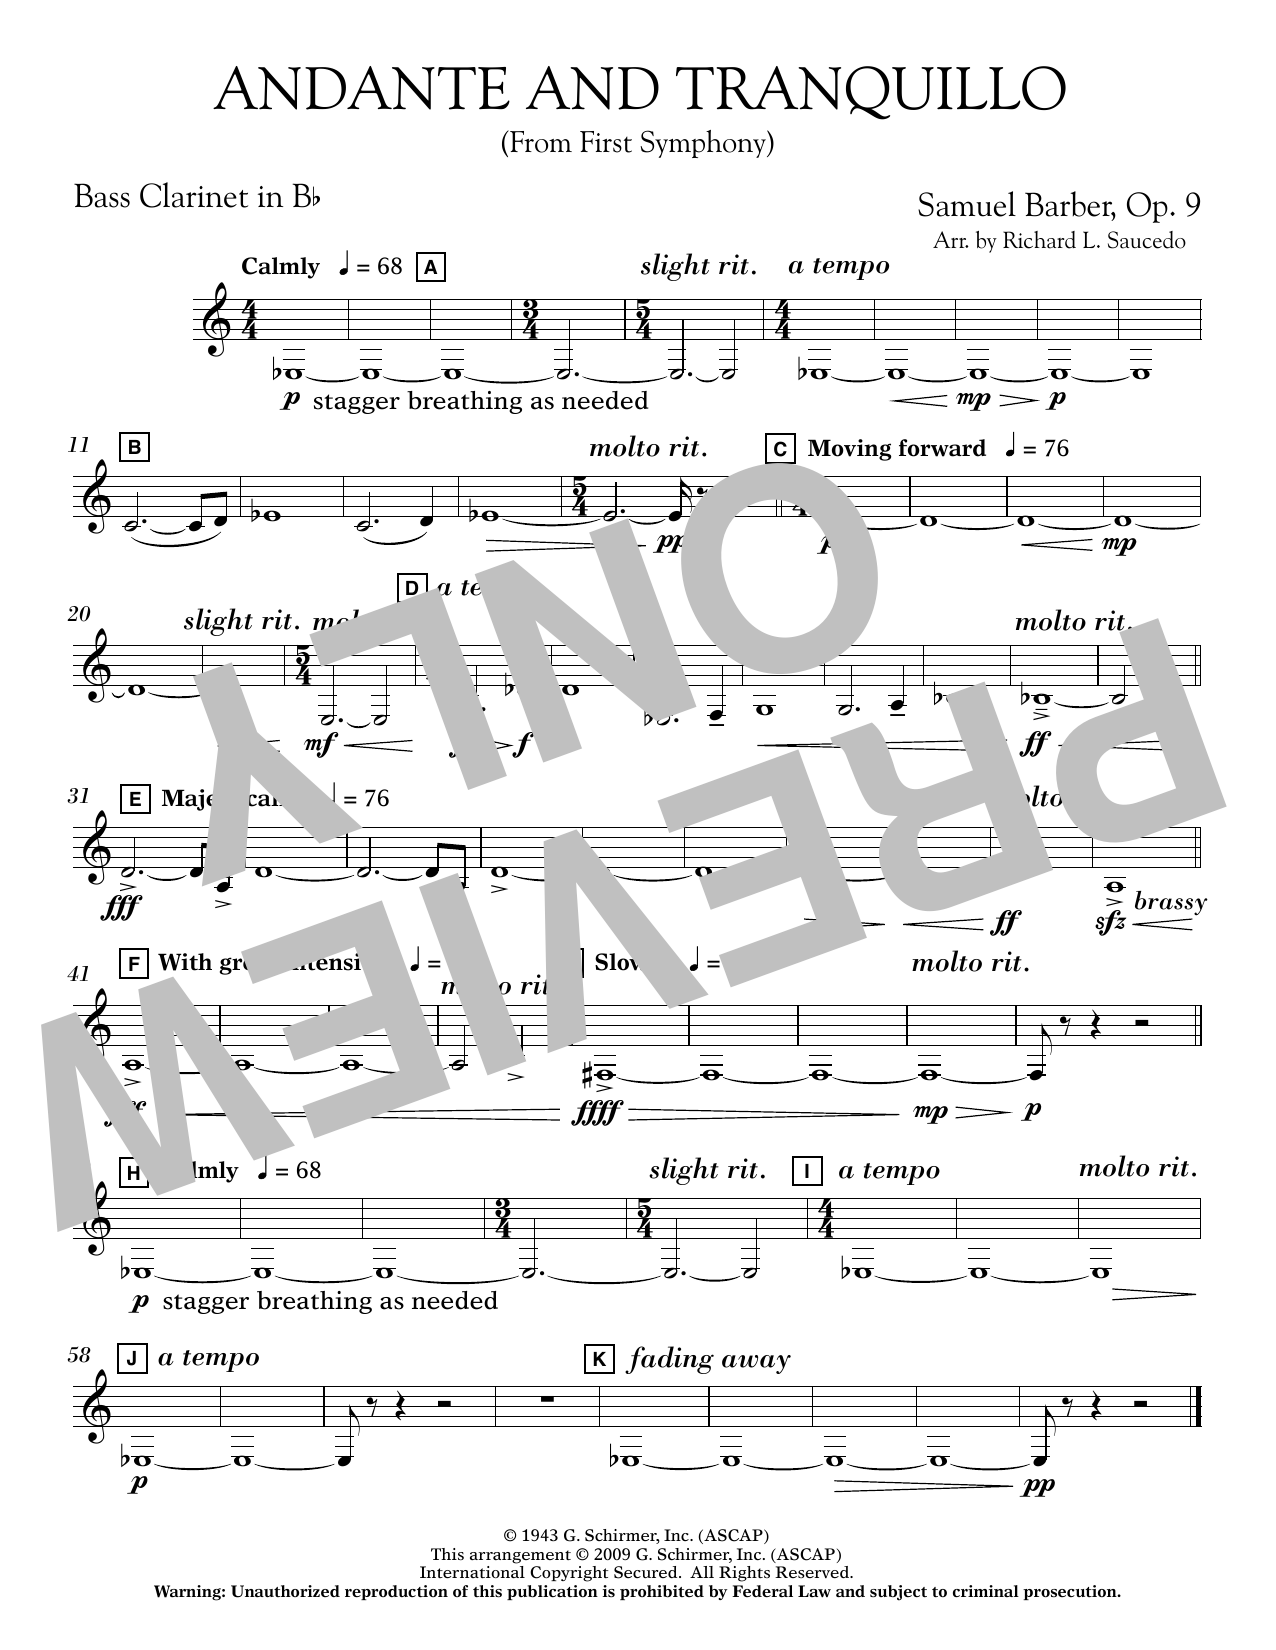 Andante and Tranquillo (from First Symphony) - Bb Bass Clarinet